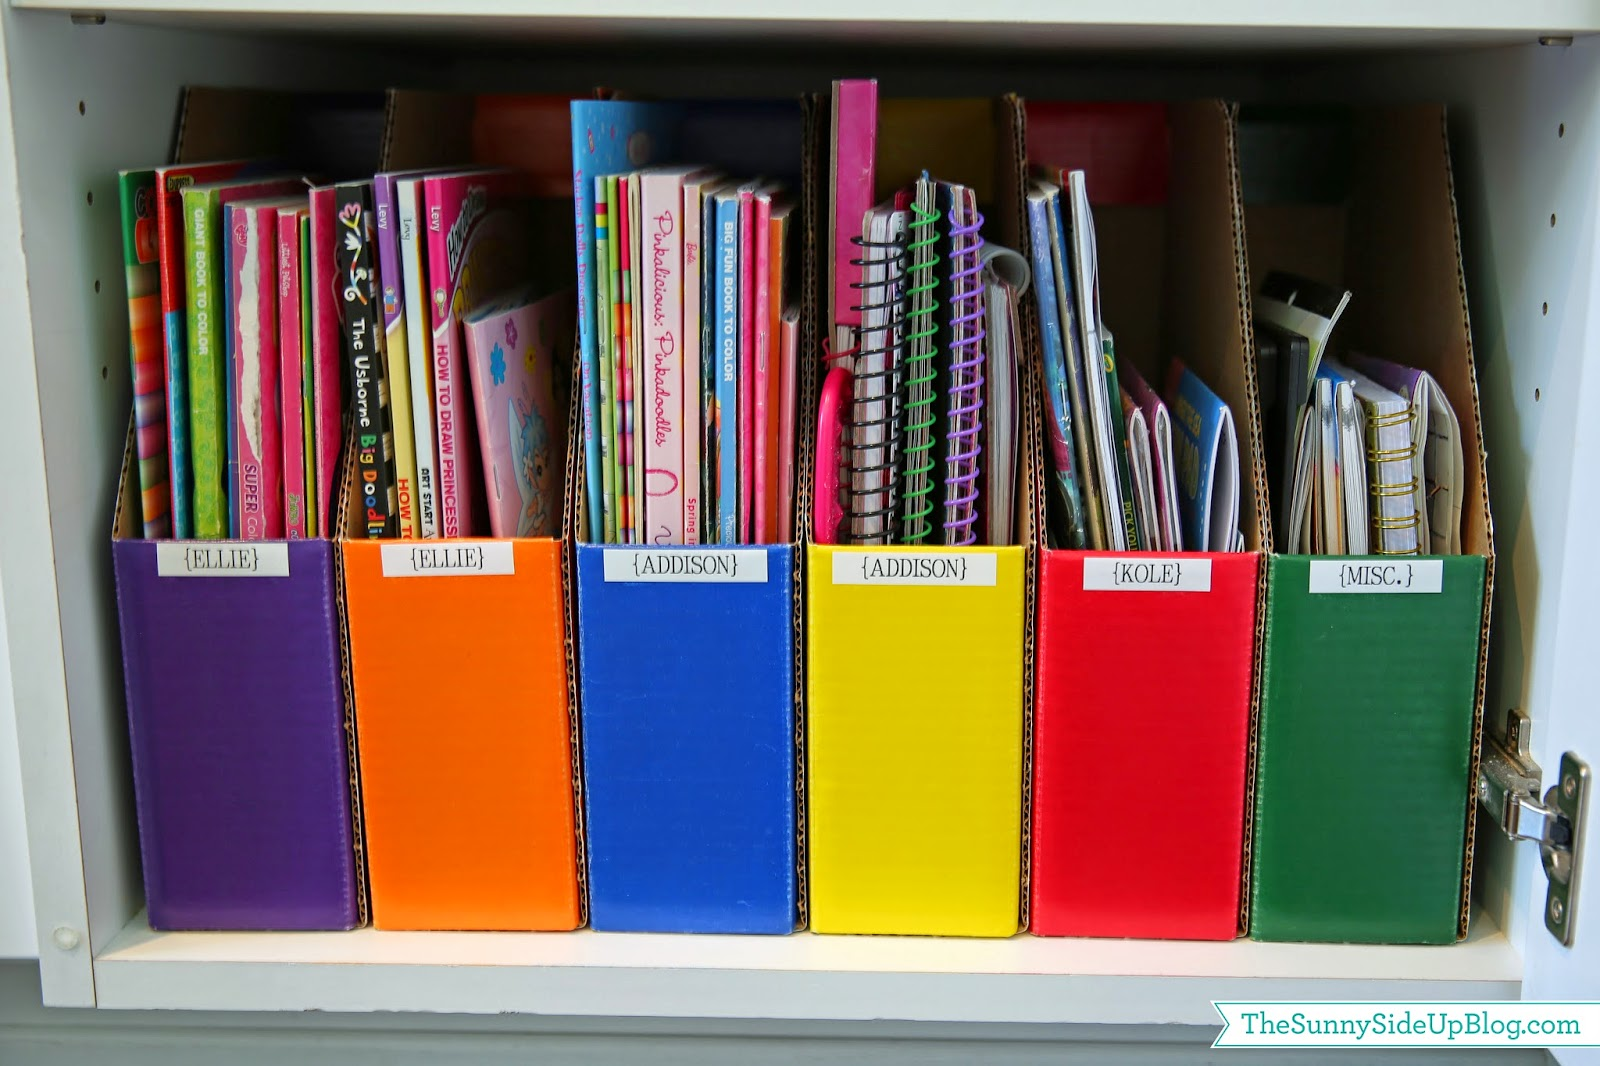 Coloring books and story books can be stored in DIY magazine holders.